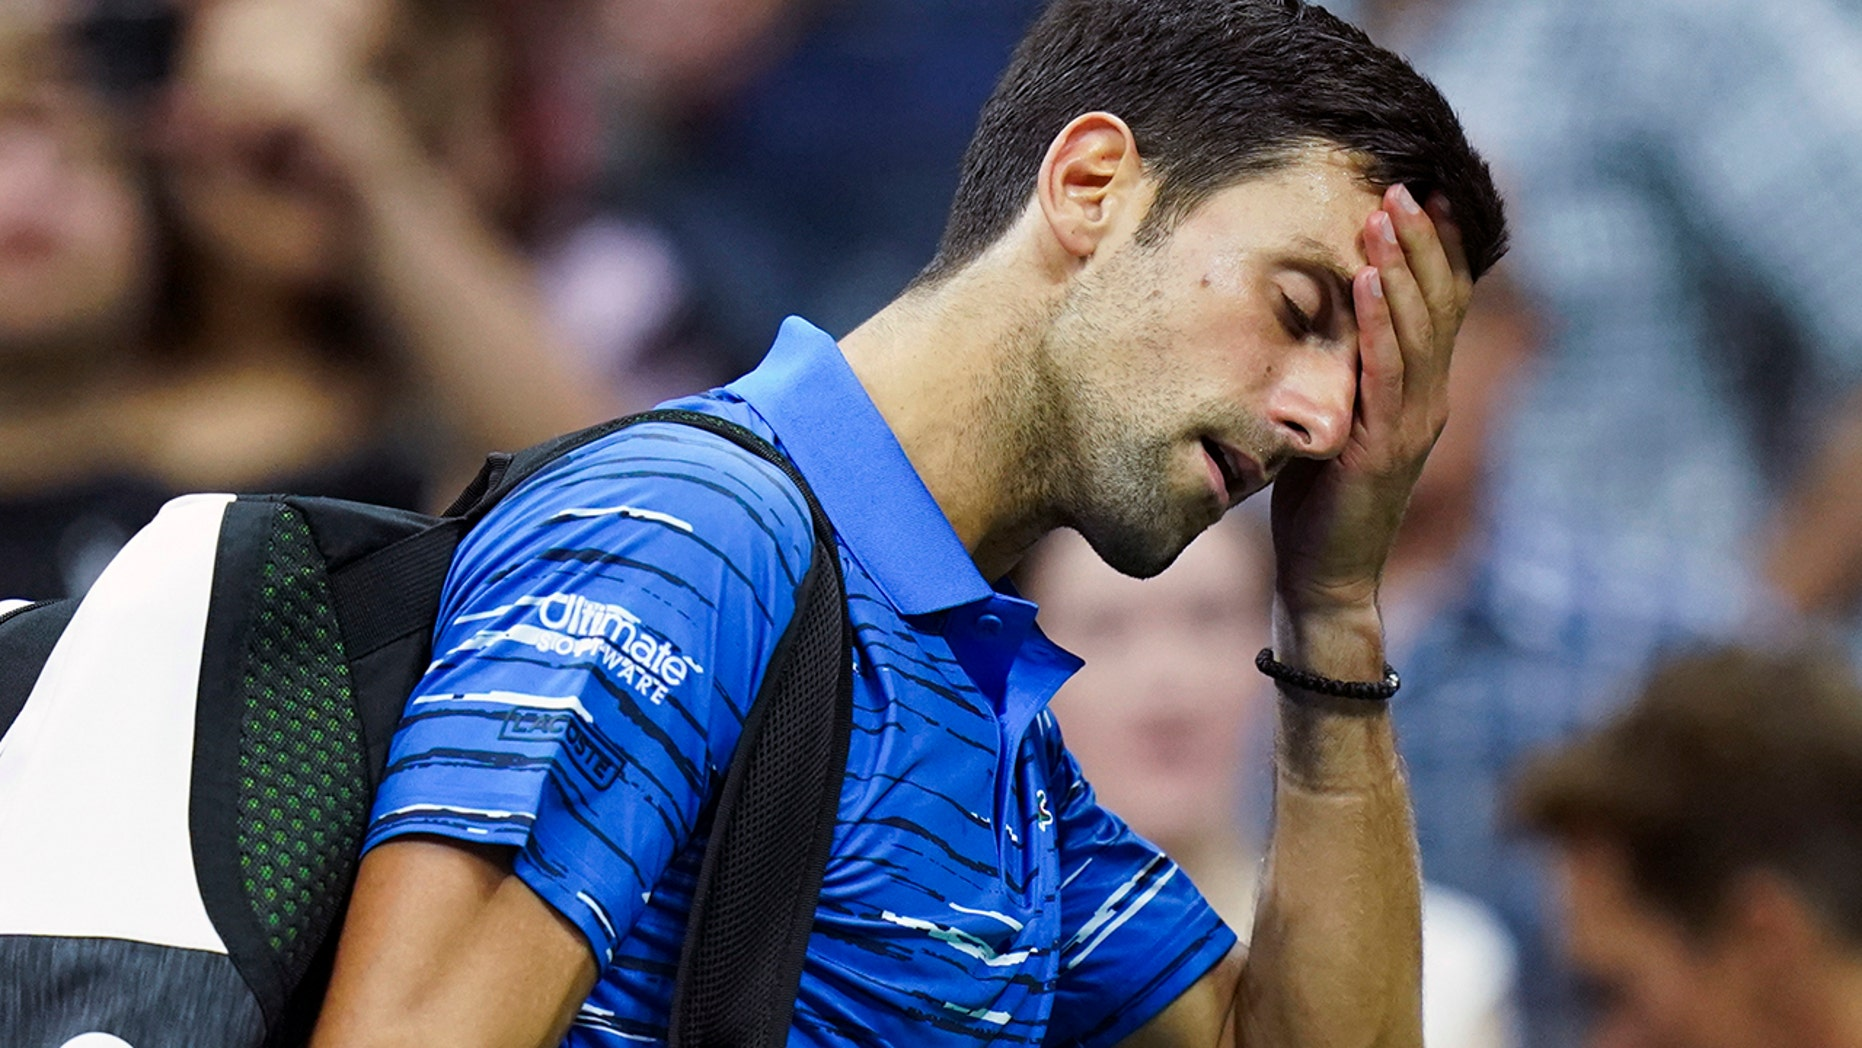 Westlake Legal Group Novak-Djokovic-THUMB Djokovic booed by crowd after retiring at US Open with bad shoulder fox-news/sports/tennis/us-open-tennis fox-news/sports/tennis fnc/sports fnc e1dc2dbf-b050-5f97-a58a-1296865725bb Associated Press article